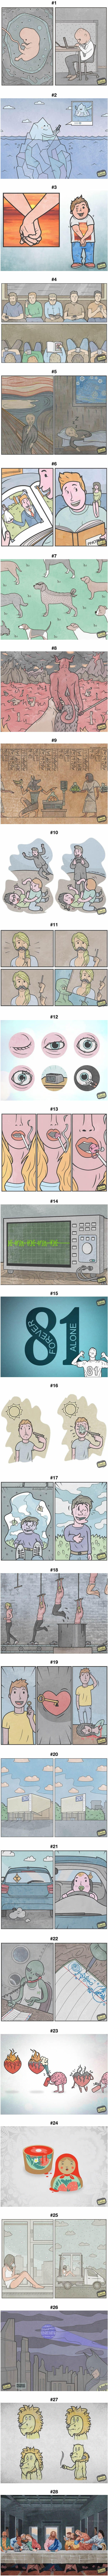 28 Illustrations That You'll Have To See Twice To Understand (By Anton Gudim)